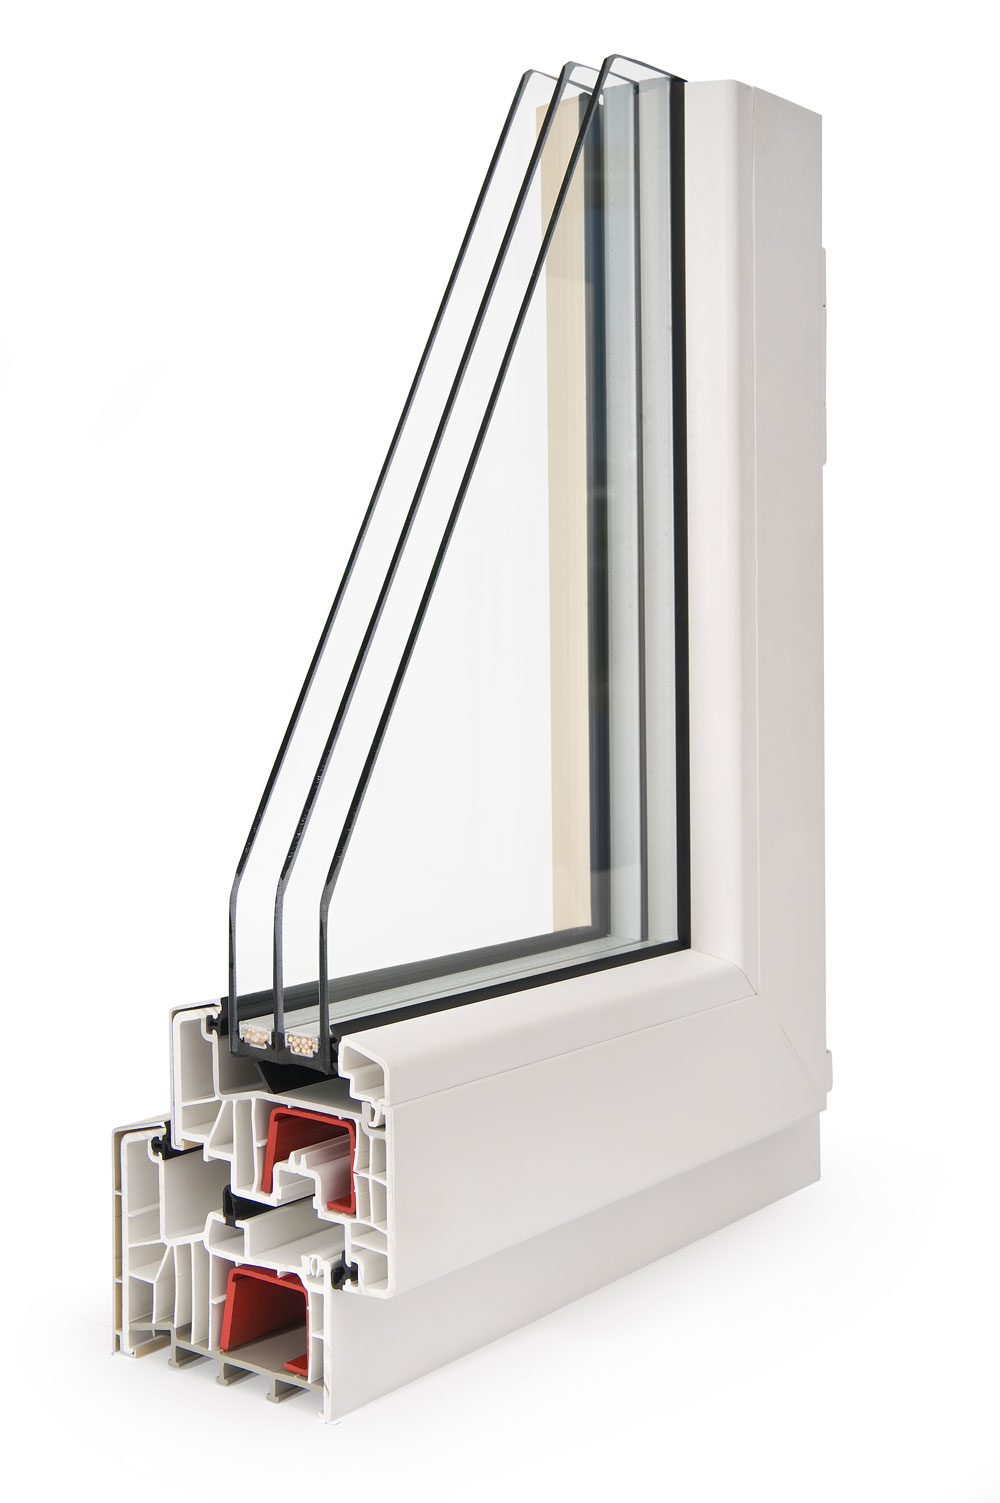 Alu upvc windows gallery uniwin windows doors for Upvc windows